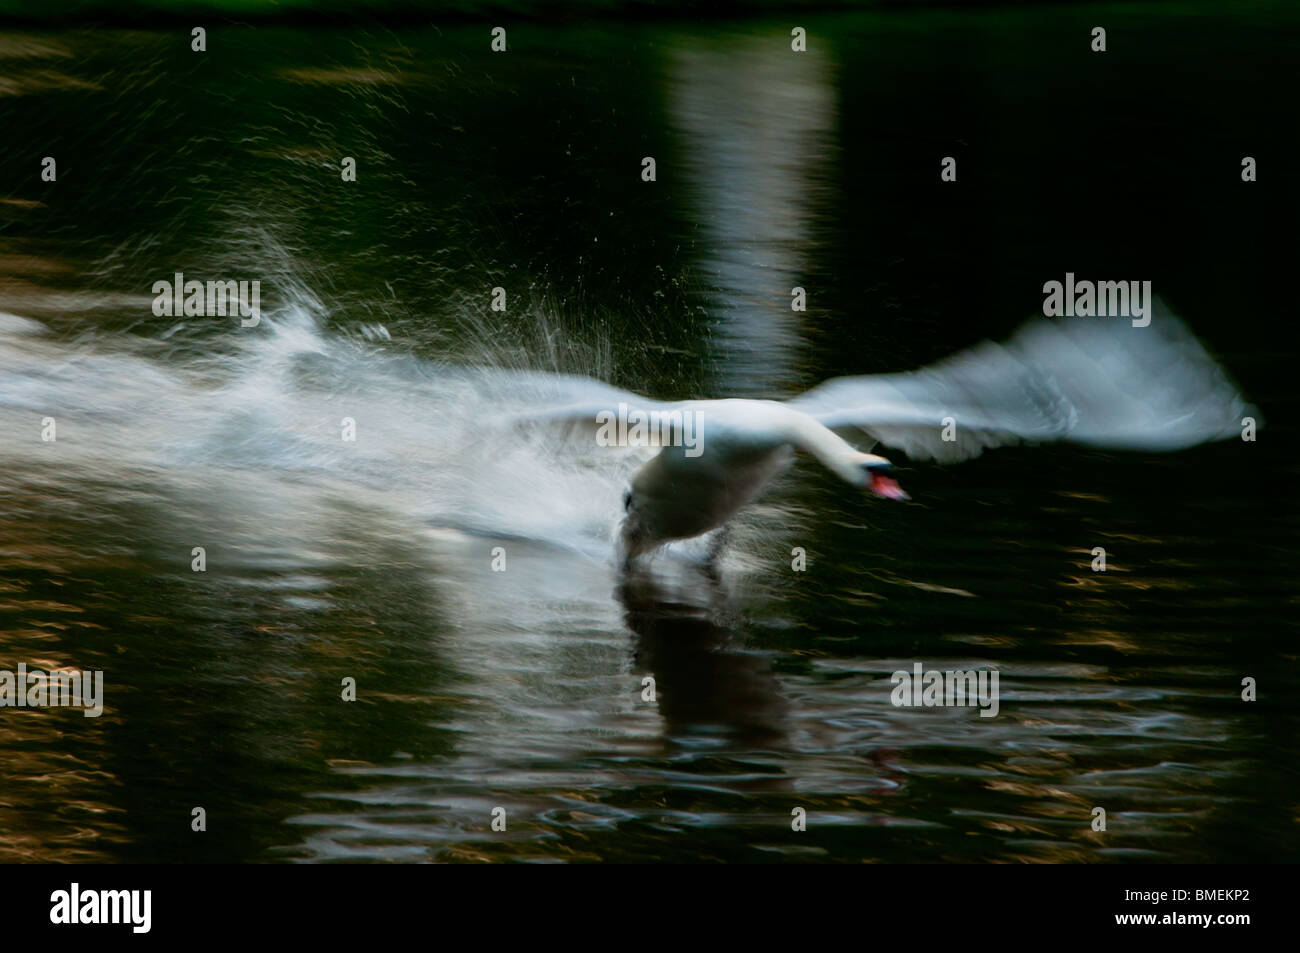 Swan landing - severe motion blur used as a creative effect. - Stock Image